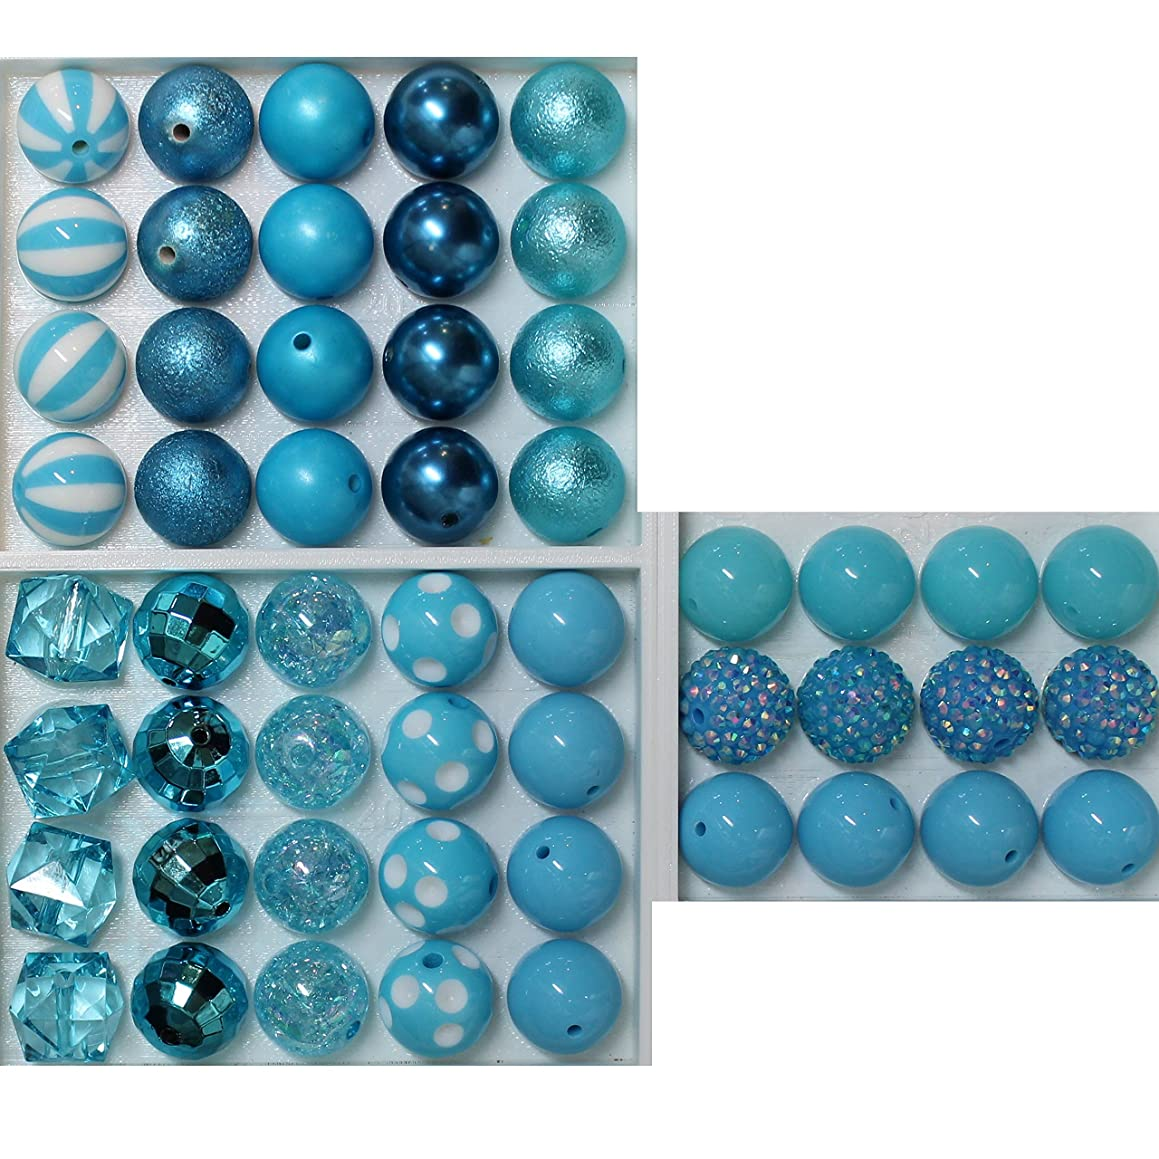 20mm Bulk Mix of 52 Cyan Blue Chunky Bubblegum Beads 11 Styles Acrylic Gumball Beads Lot